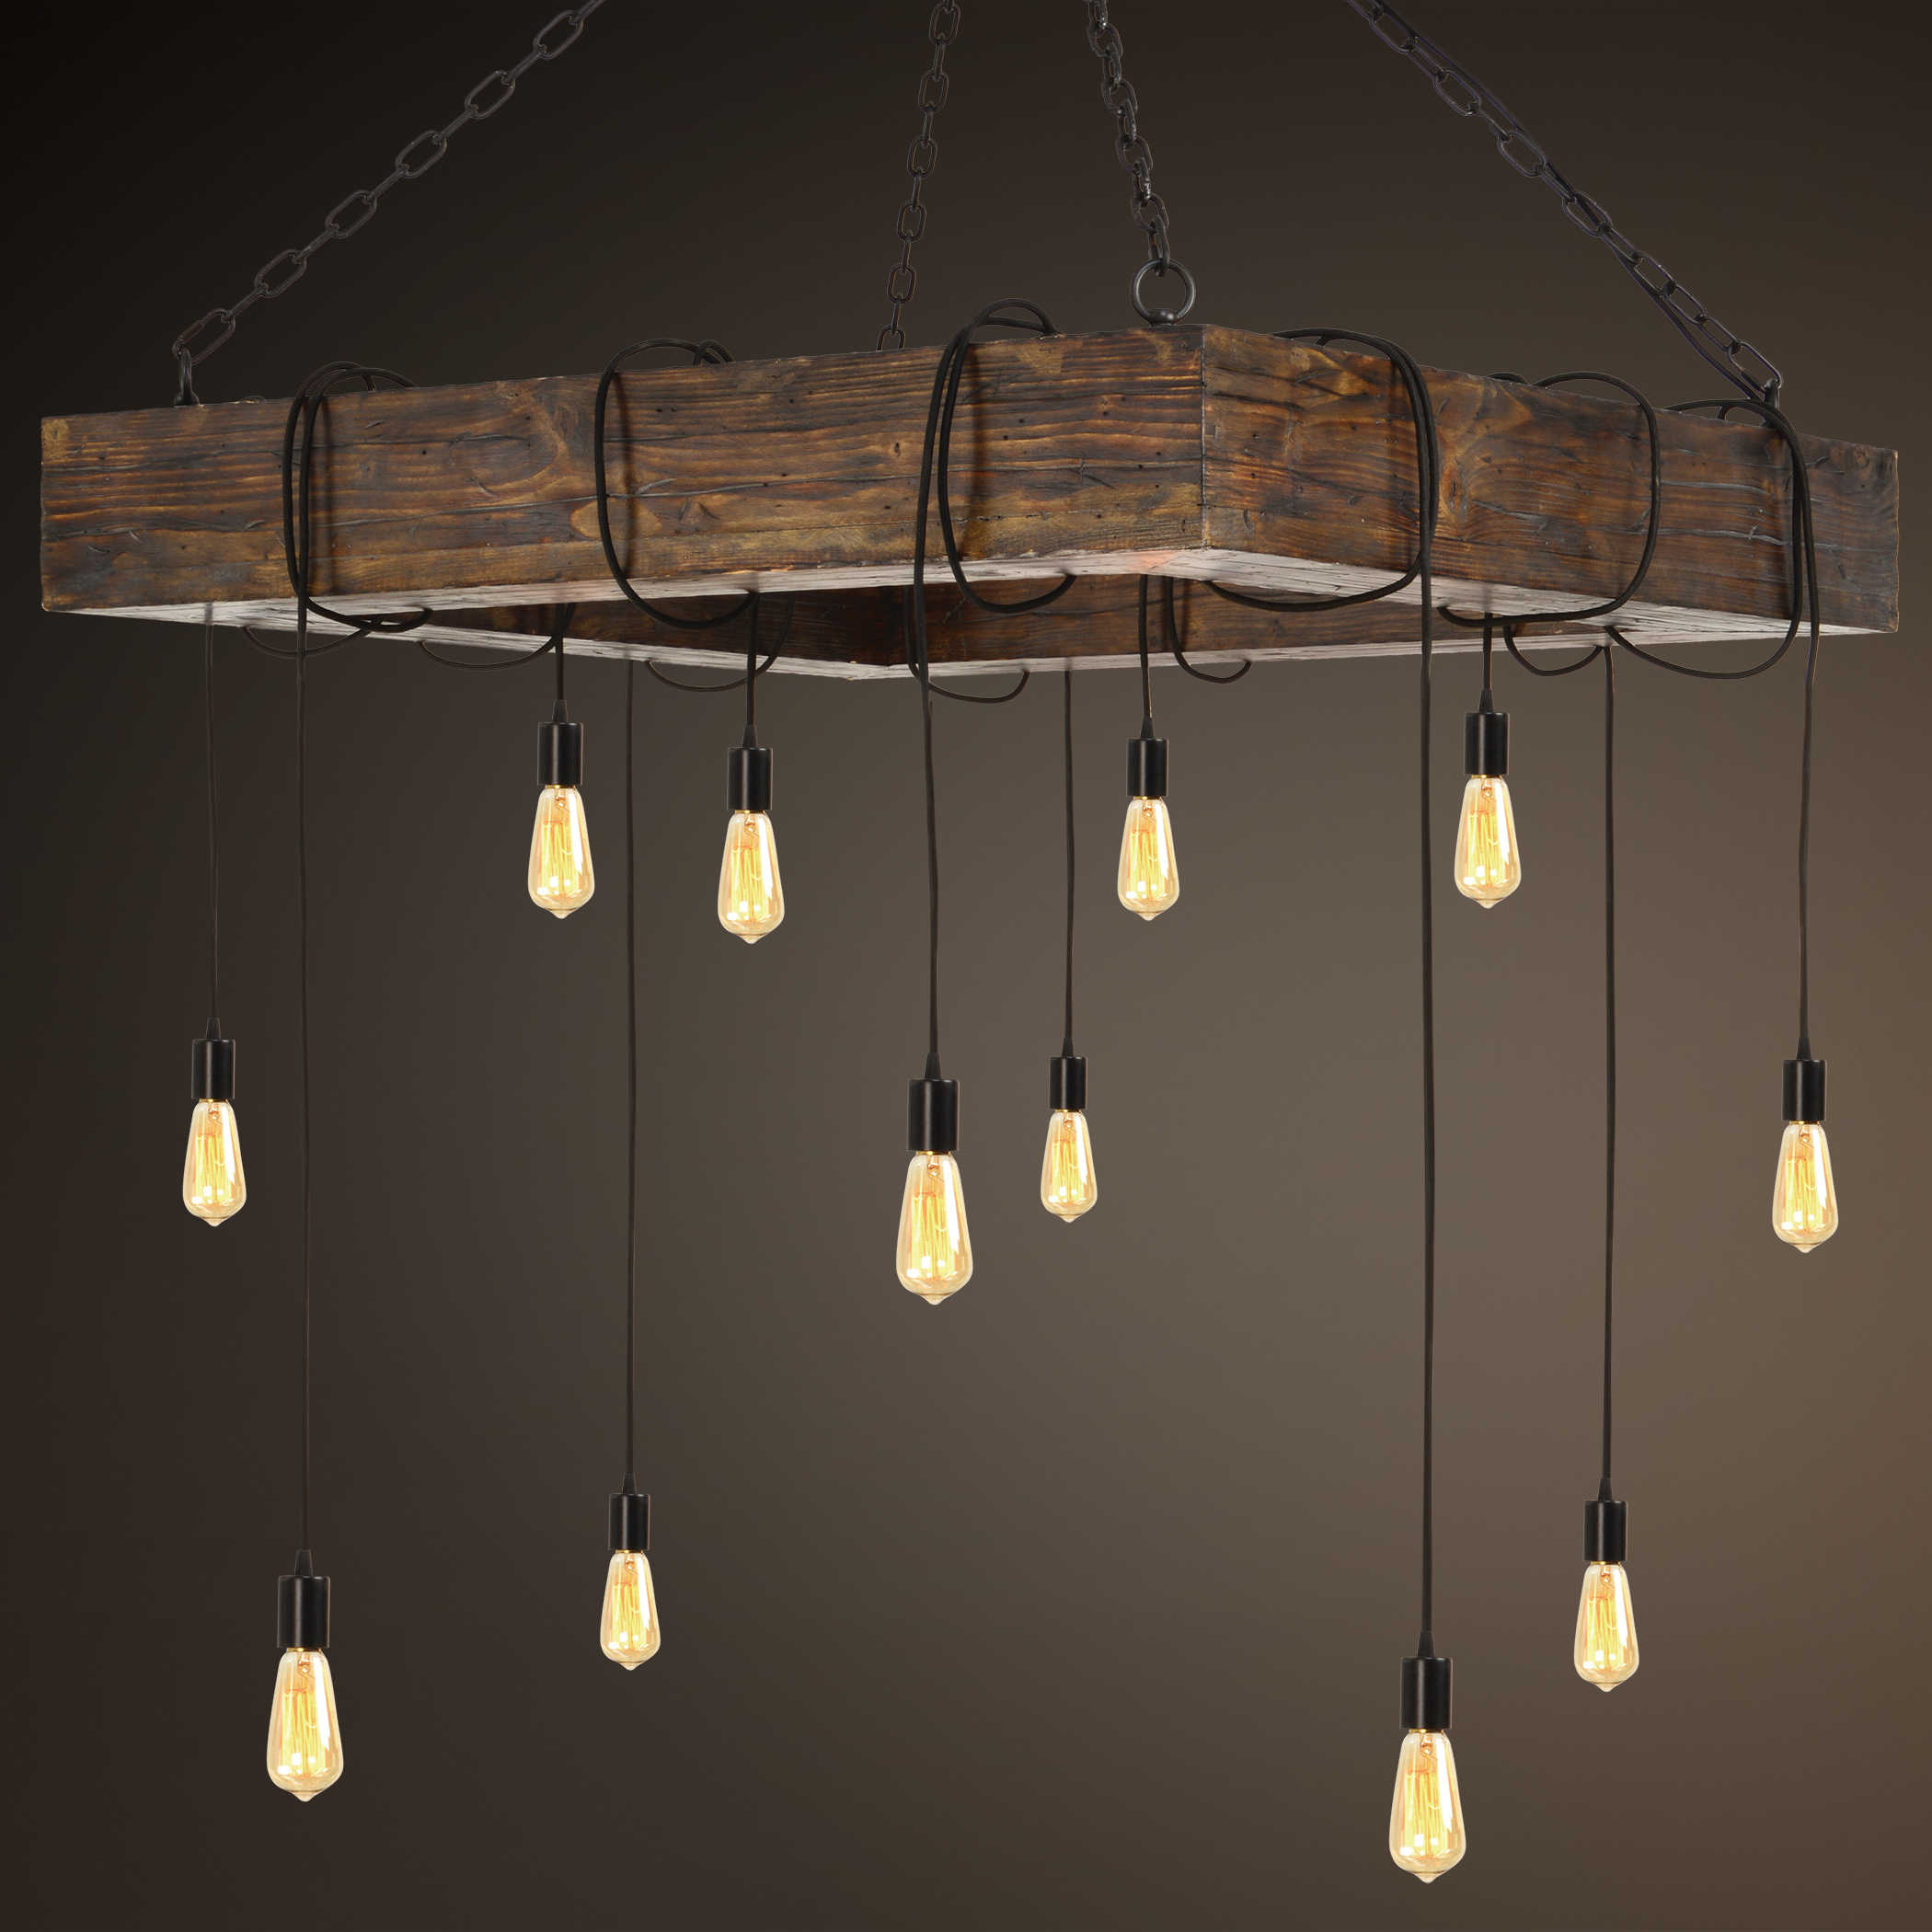 Lighting The Way Rail Tie Fixtures Ciao Interiors